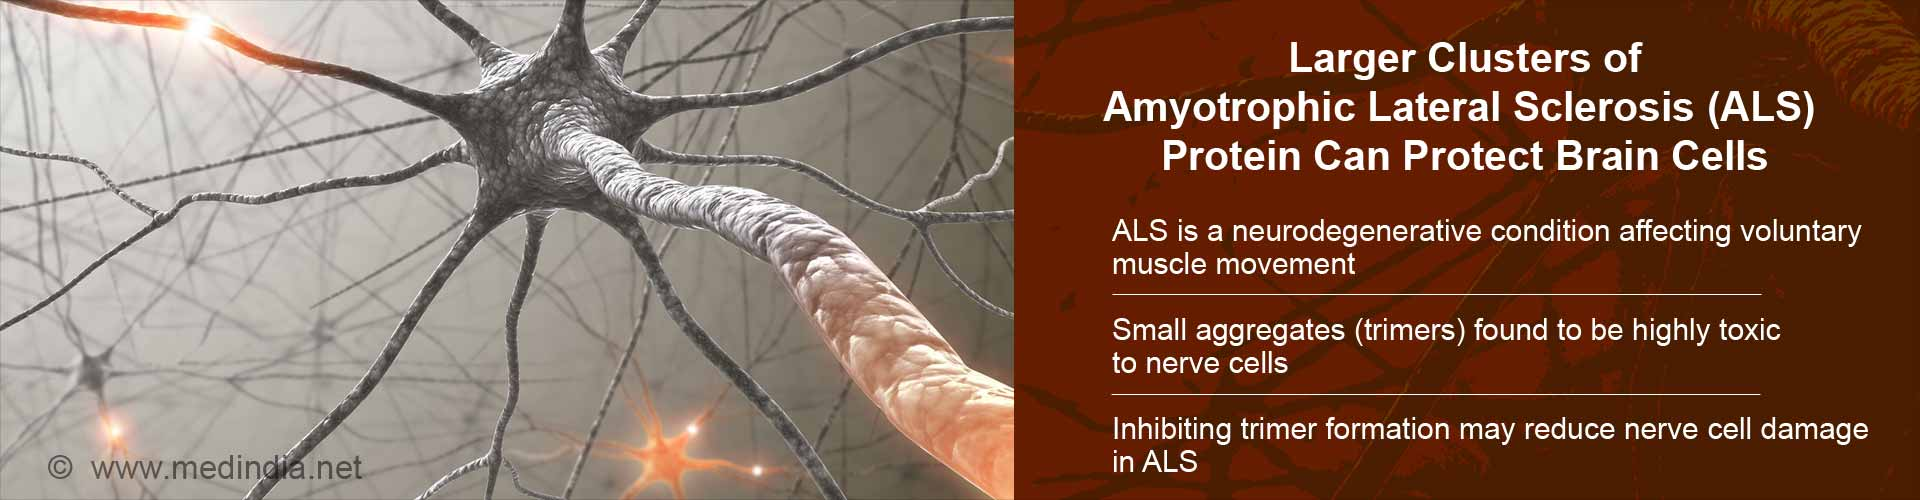 Larger Clusters of ALS Protein Can Protect Brain Cells